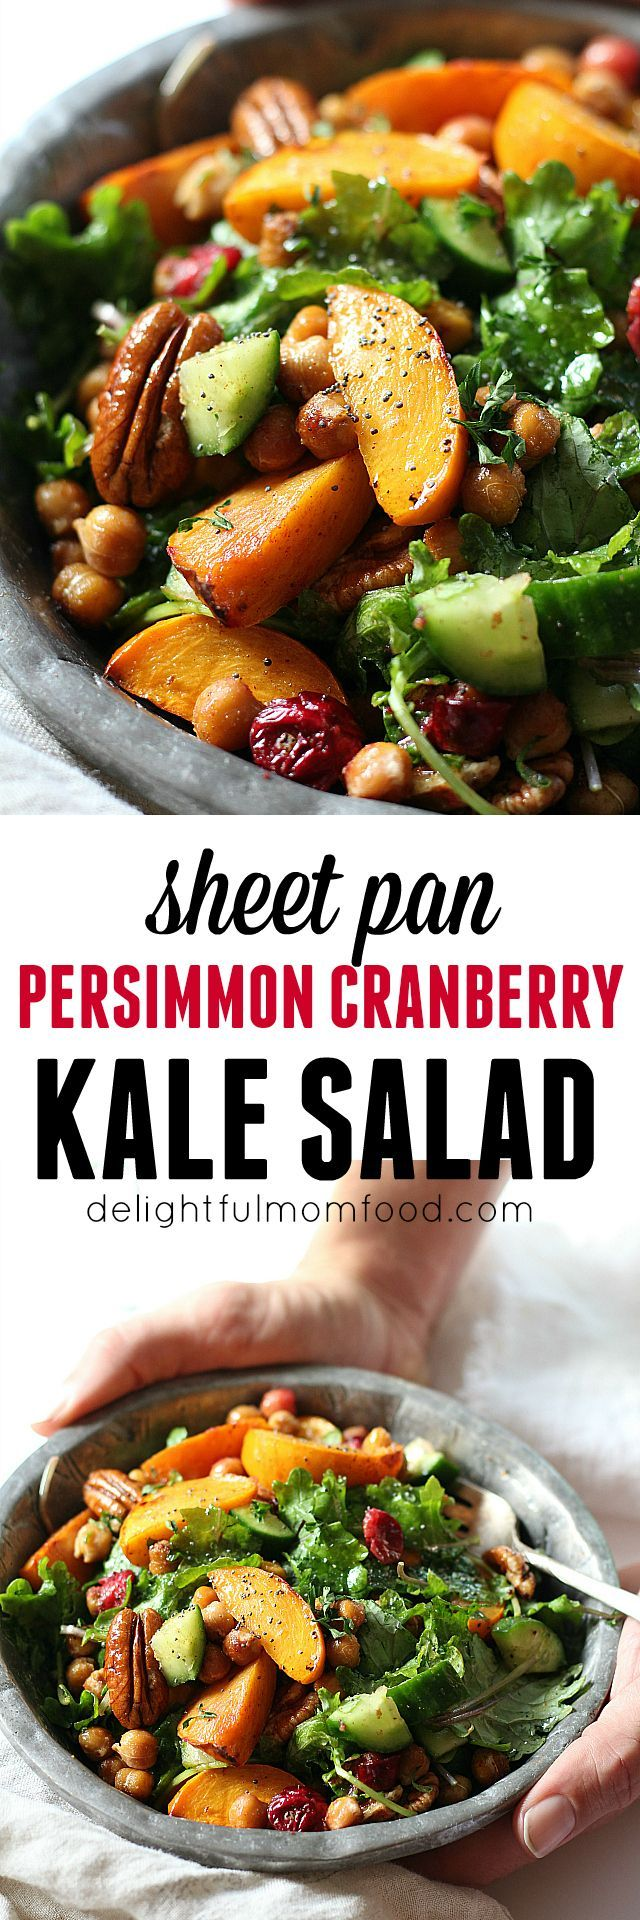 Kale Salad With Chickpeas, Cranberry & Persimmon